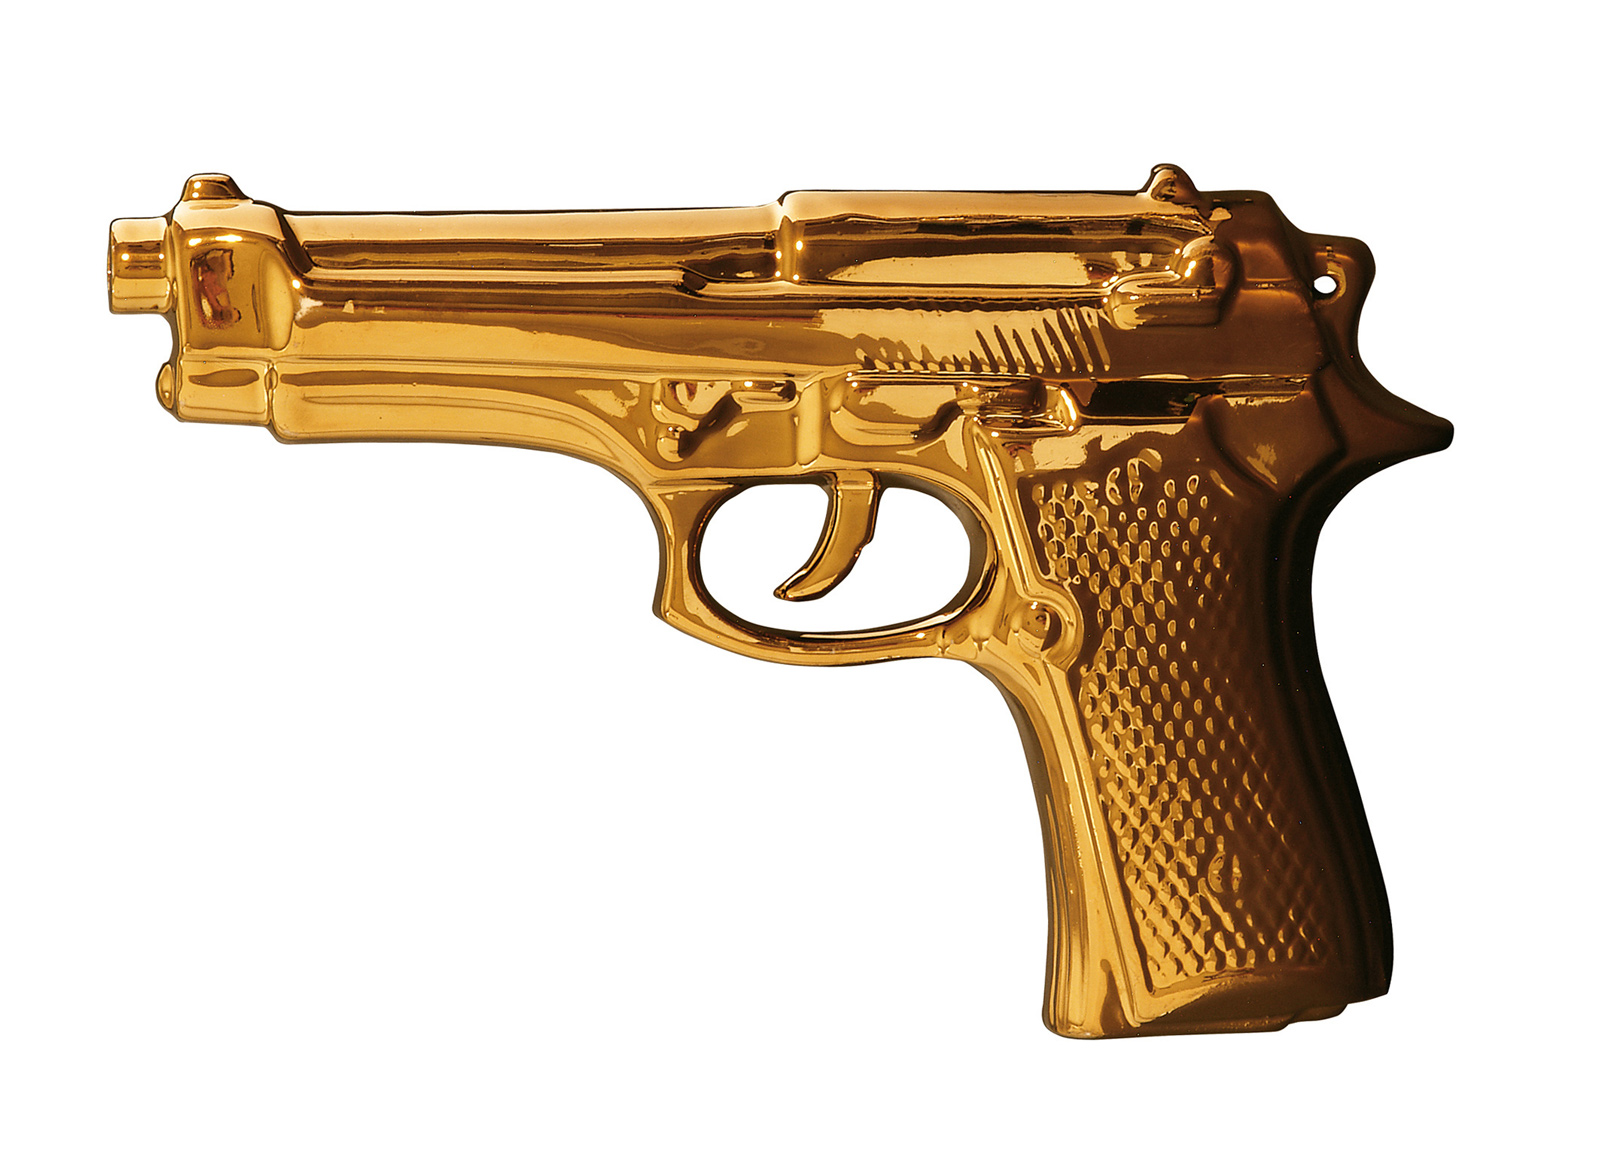 Dekoration, Memorabilia My Gun Gold Edition - Bild 2